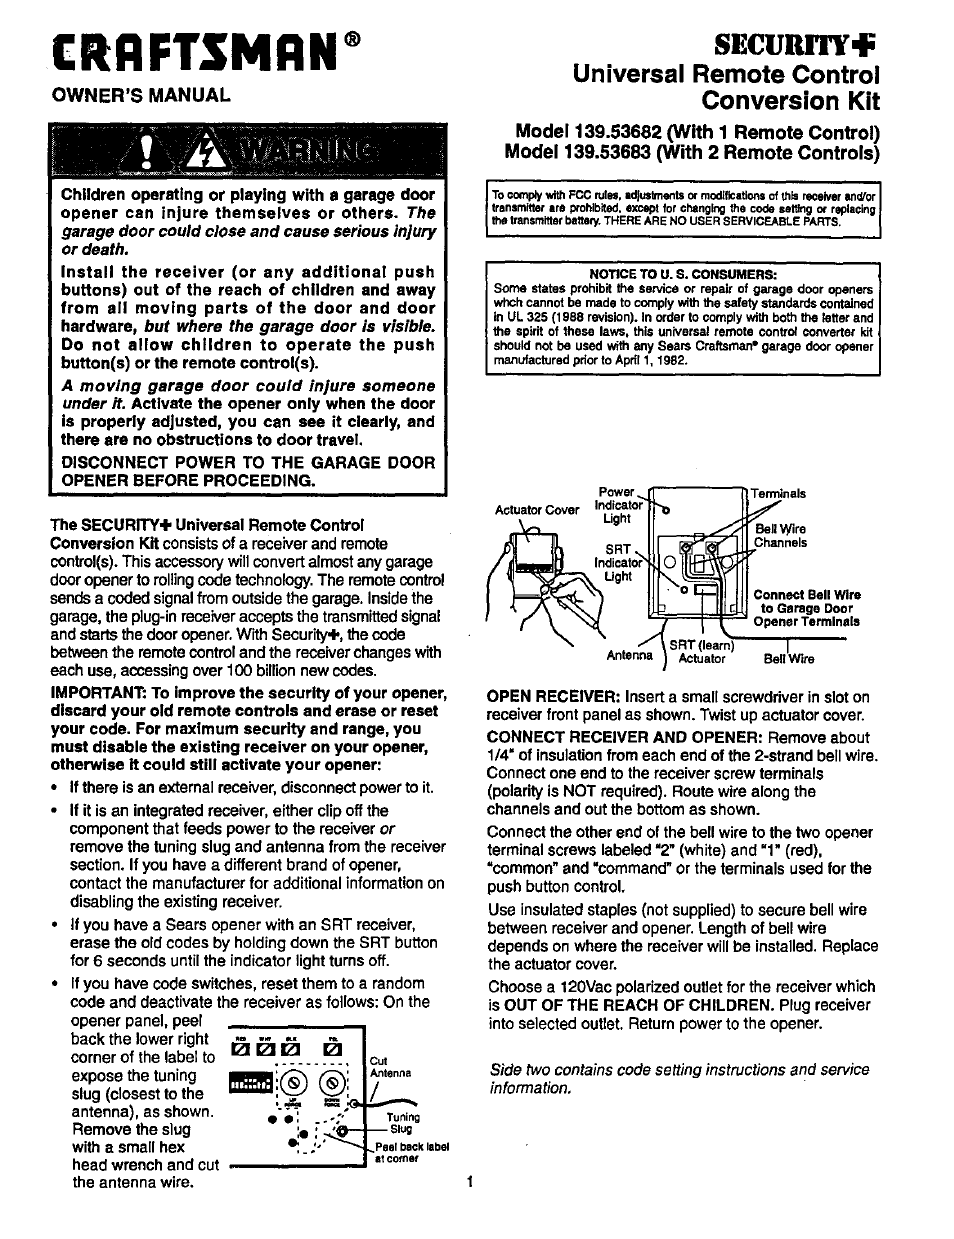 Craftsman 13953683 User Manual 2 Pages Also For 13953682